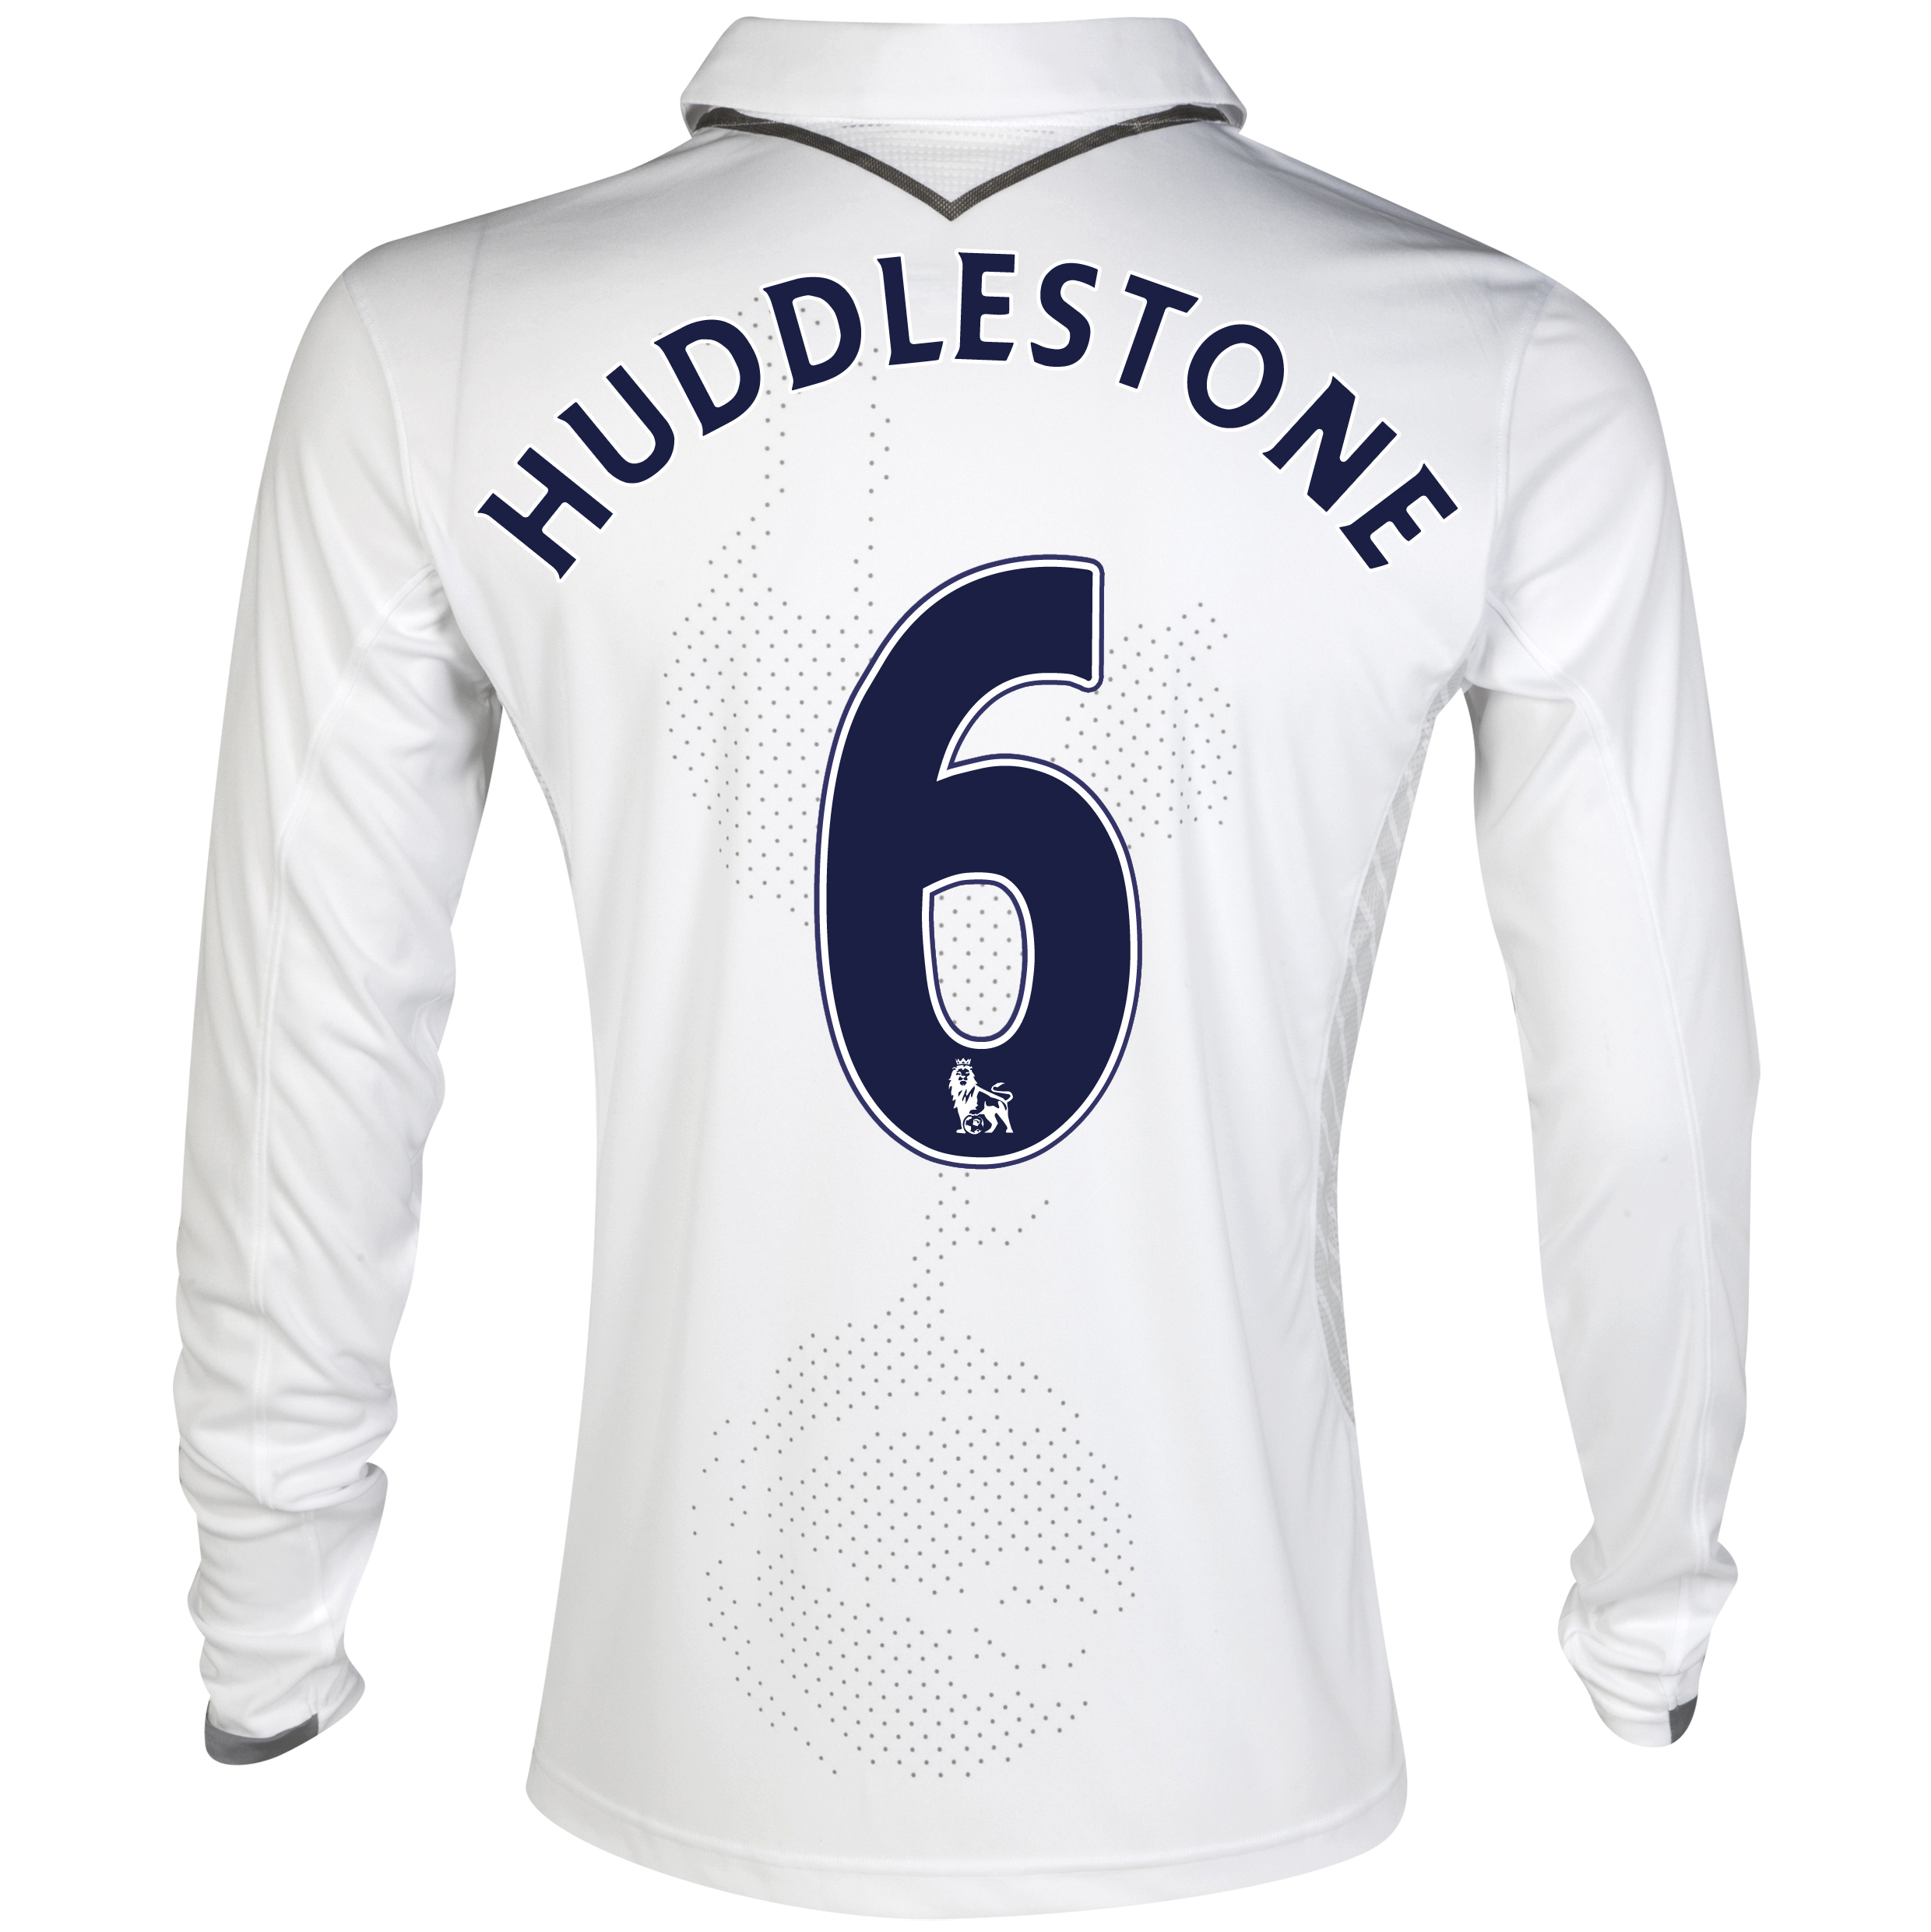 Tottenham Hotspur Home Shirt 2012/13 - Long Sleeve with Huddlestone 6 printing